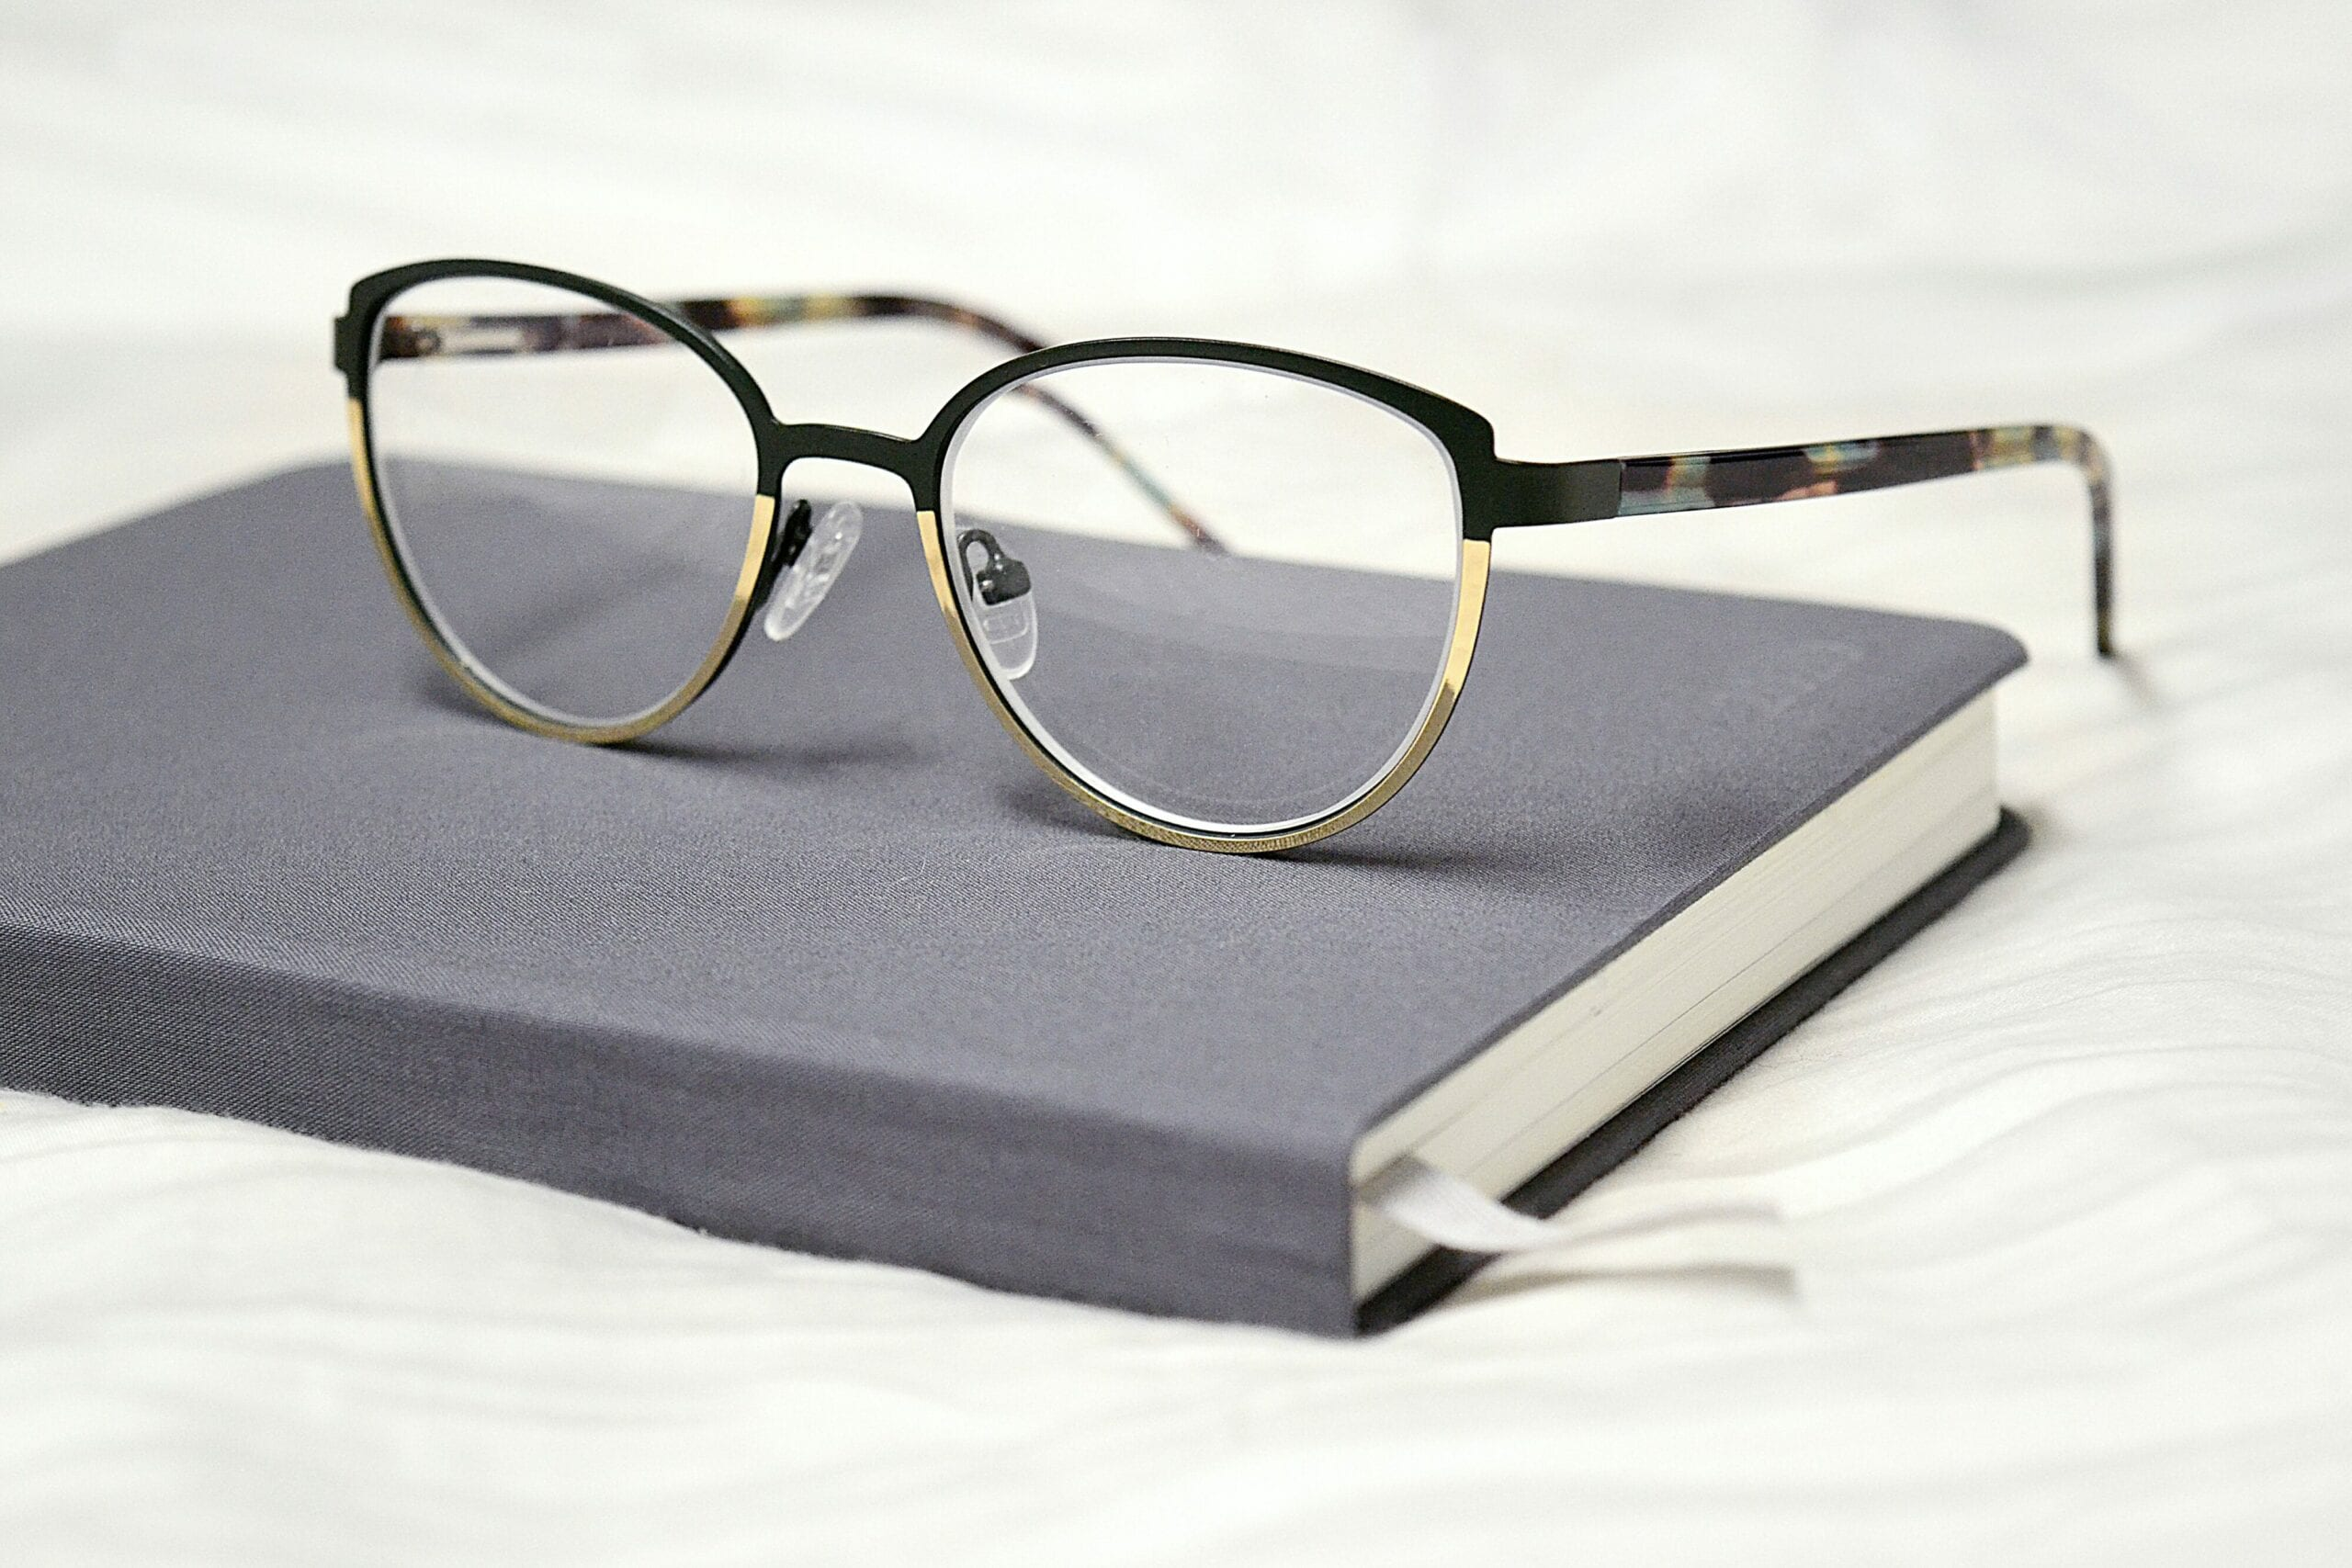 A pair of glasses sitting on a jounal